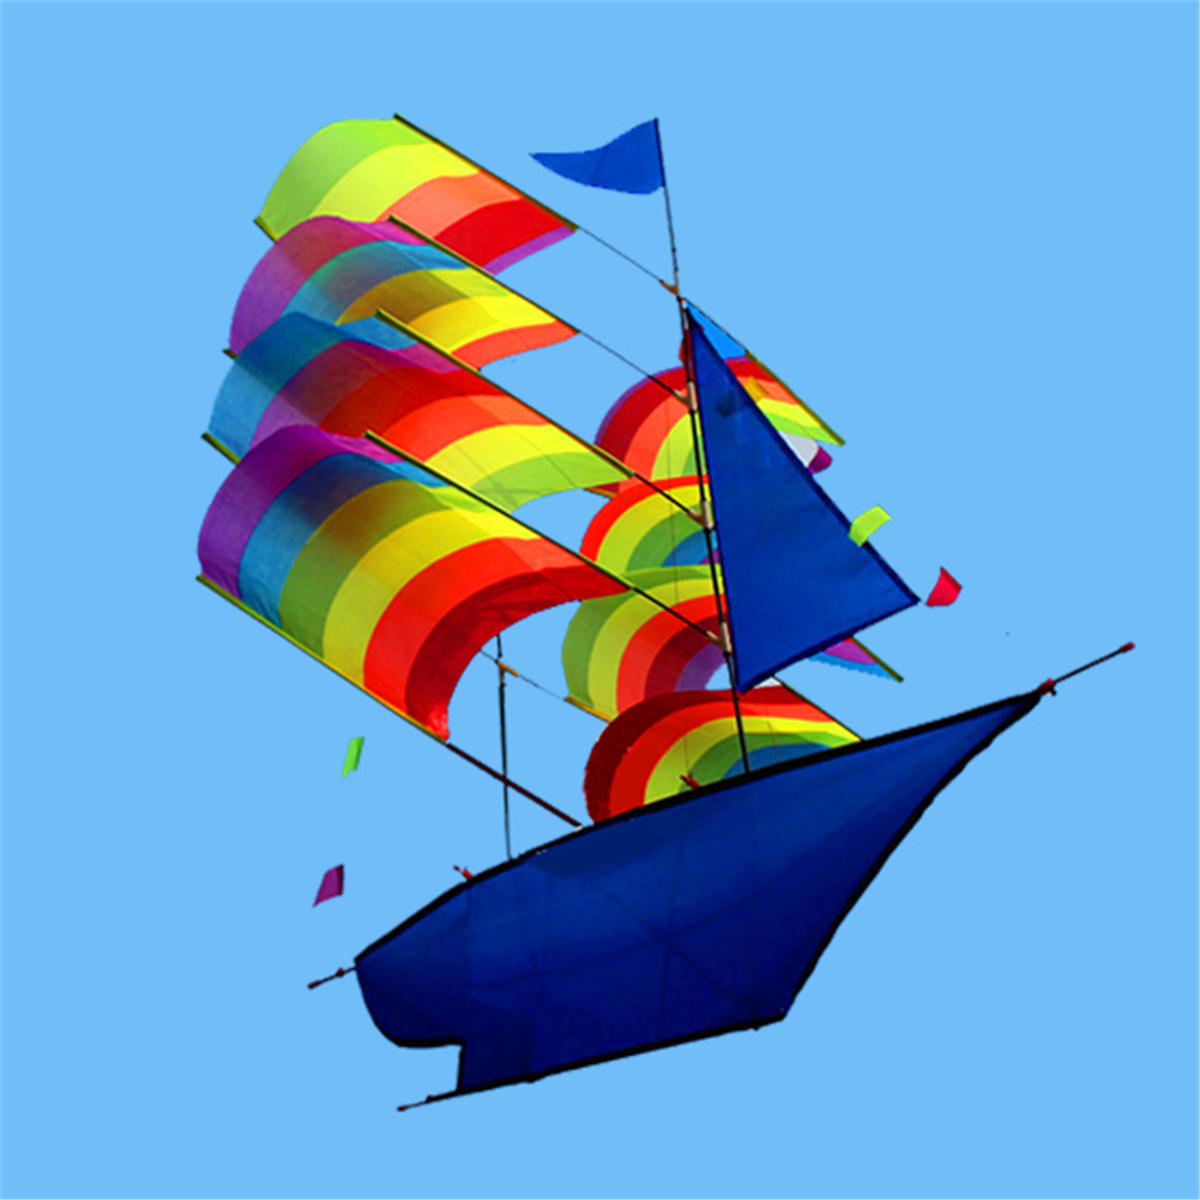 Huge 37 3d Stereo Sailboat Kite Big Size Flying Free